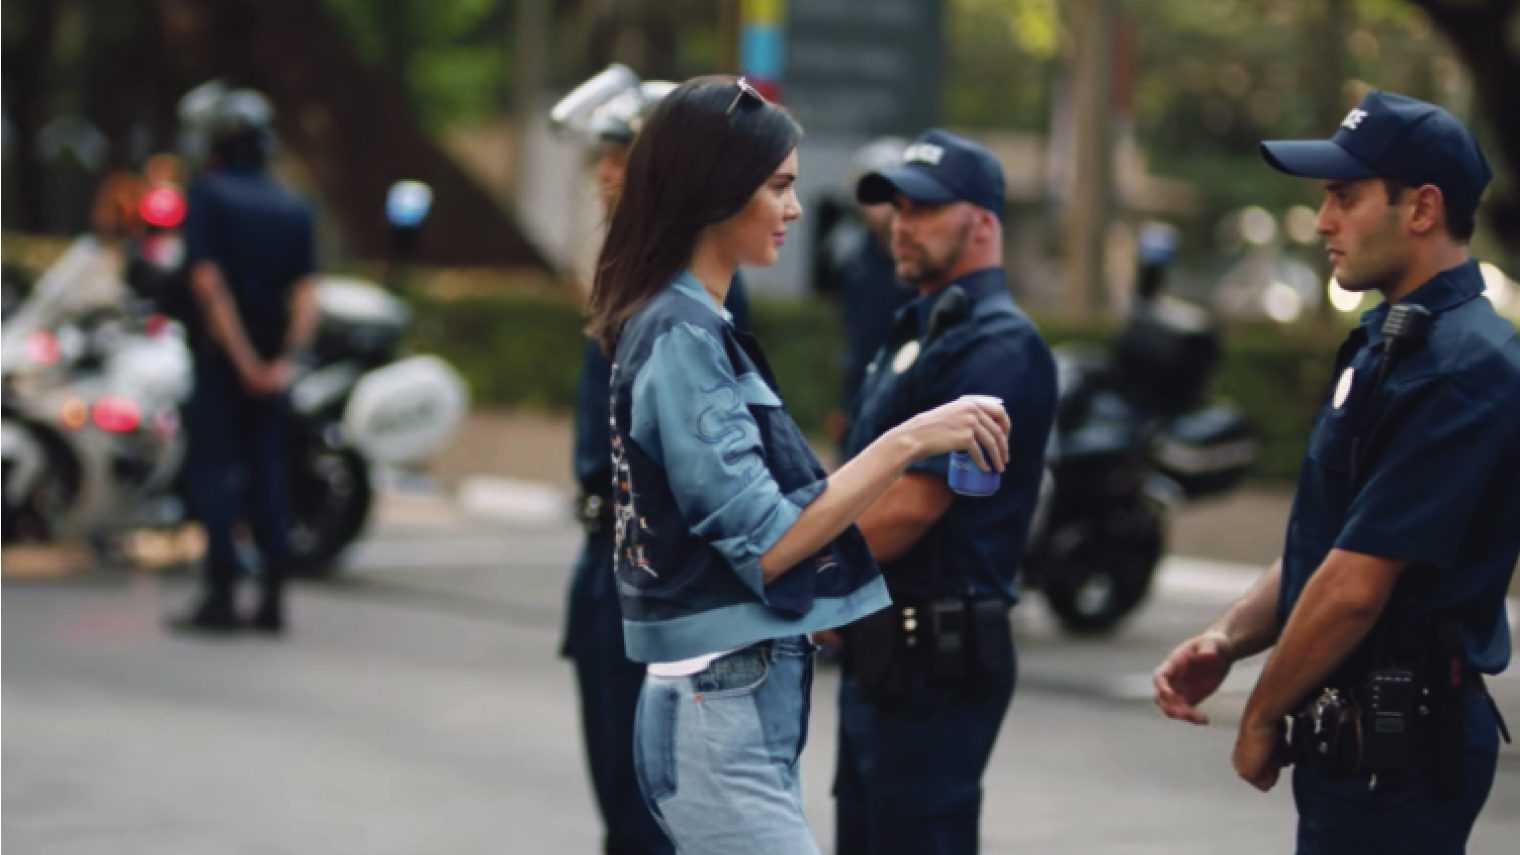 Pepsi pulled its controversial, politically charged TV ad featuring Kendall Jenner after widespread criticism that it trivialised civil rights movements